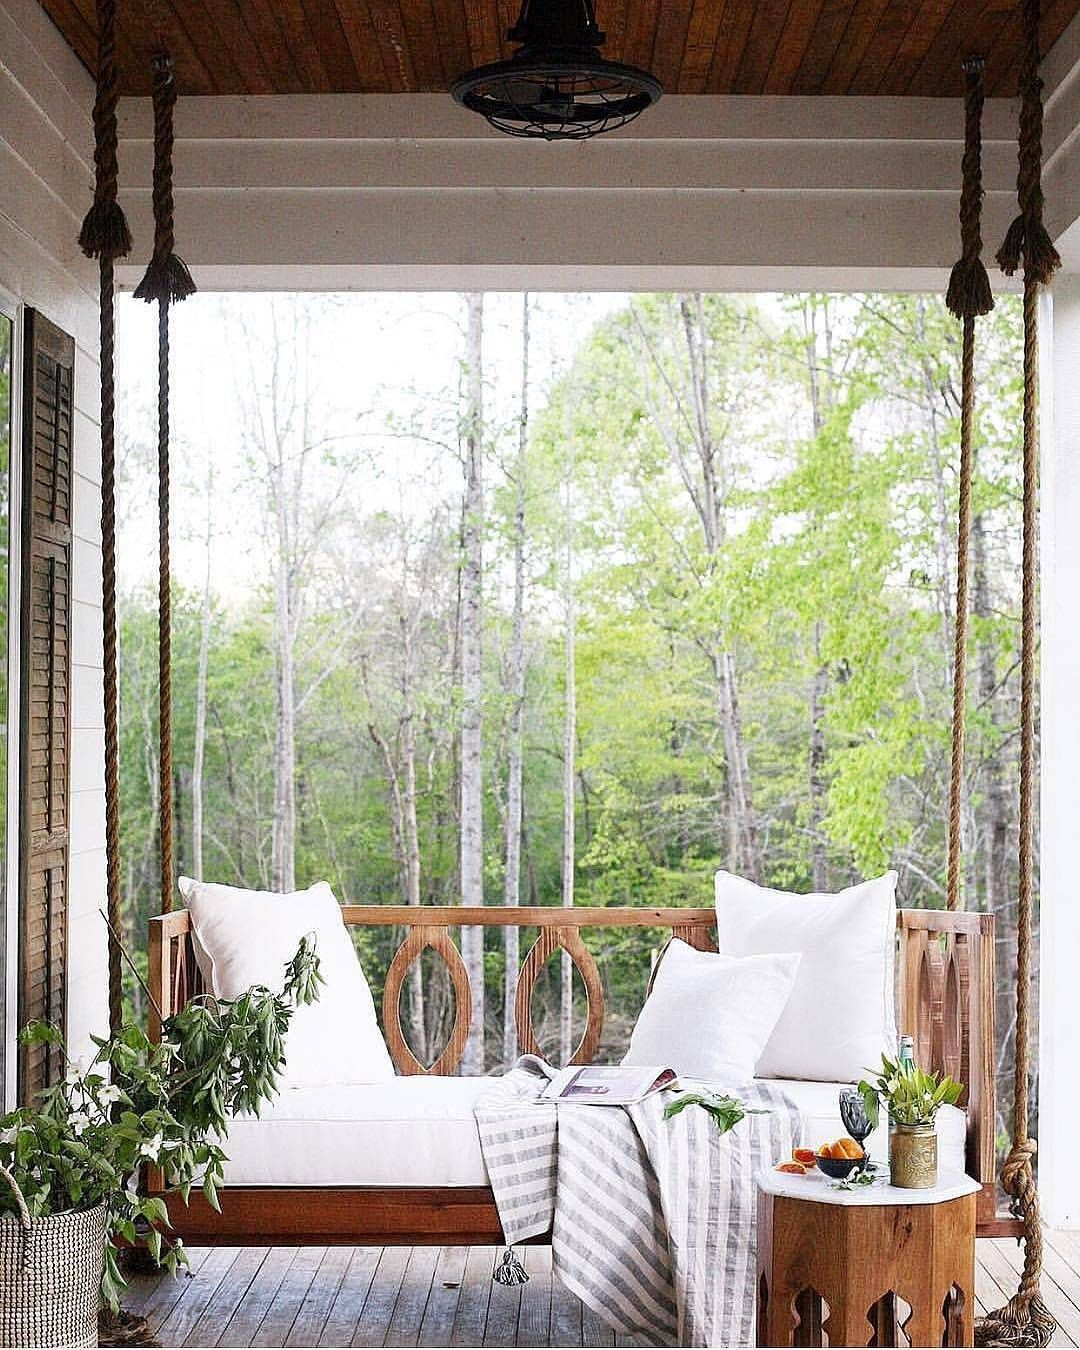 This is the porch swing of our